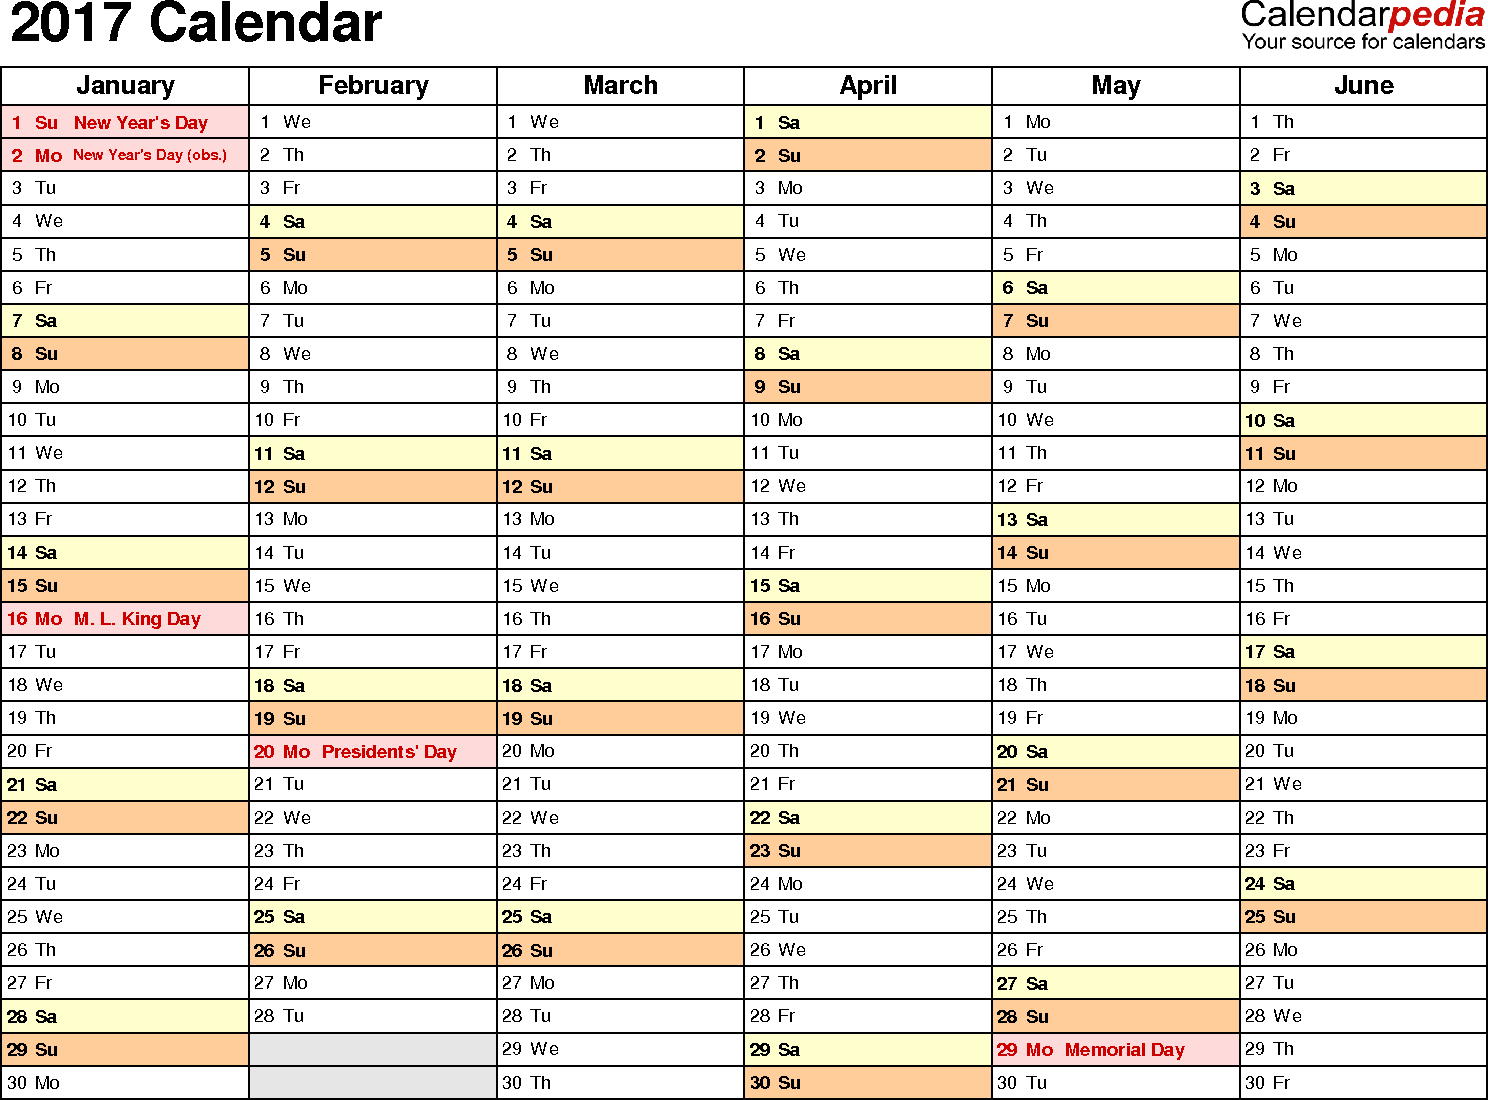 Ediblewildsus  Mesmerizing  Calendar  Download  Free Printable Excel Templates Xls With Glamorous Template   Calendar For Excel Months Horizontally  Pages Landscape Orientation With Breathtaking Repeated Measures Anova Excel Also How To Count Hours In Excel In Addition Absolute Addressing Excel And Asap Utilities For Excel  As Well As Microsoft Word Powerpoint Excel Additionally Timeline Graph In Excel From Calendarpediacom With Ediblewildsus  Glamorous  Calendar  Download  Free Printable Excel Templates Xls With Breathtaking Template   Calendar For Excel Months Horizontally  Pages Landscape Orientation And Mesmerizing Repeated Measures Anova Excel Also How To Count Hours In Excel In Addition Absolute Addressing Excel From Calendarpediacom